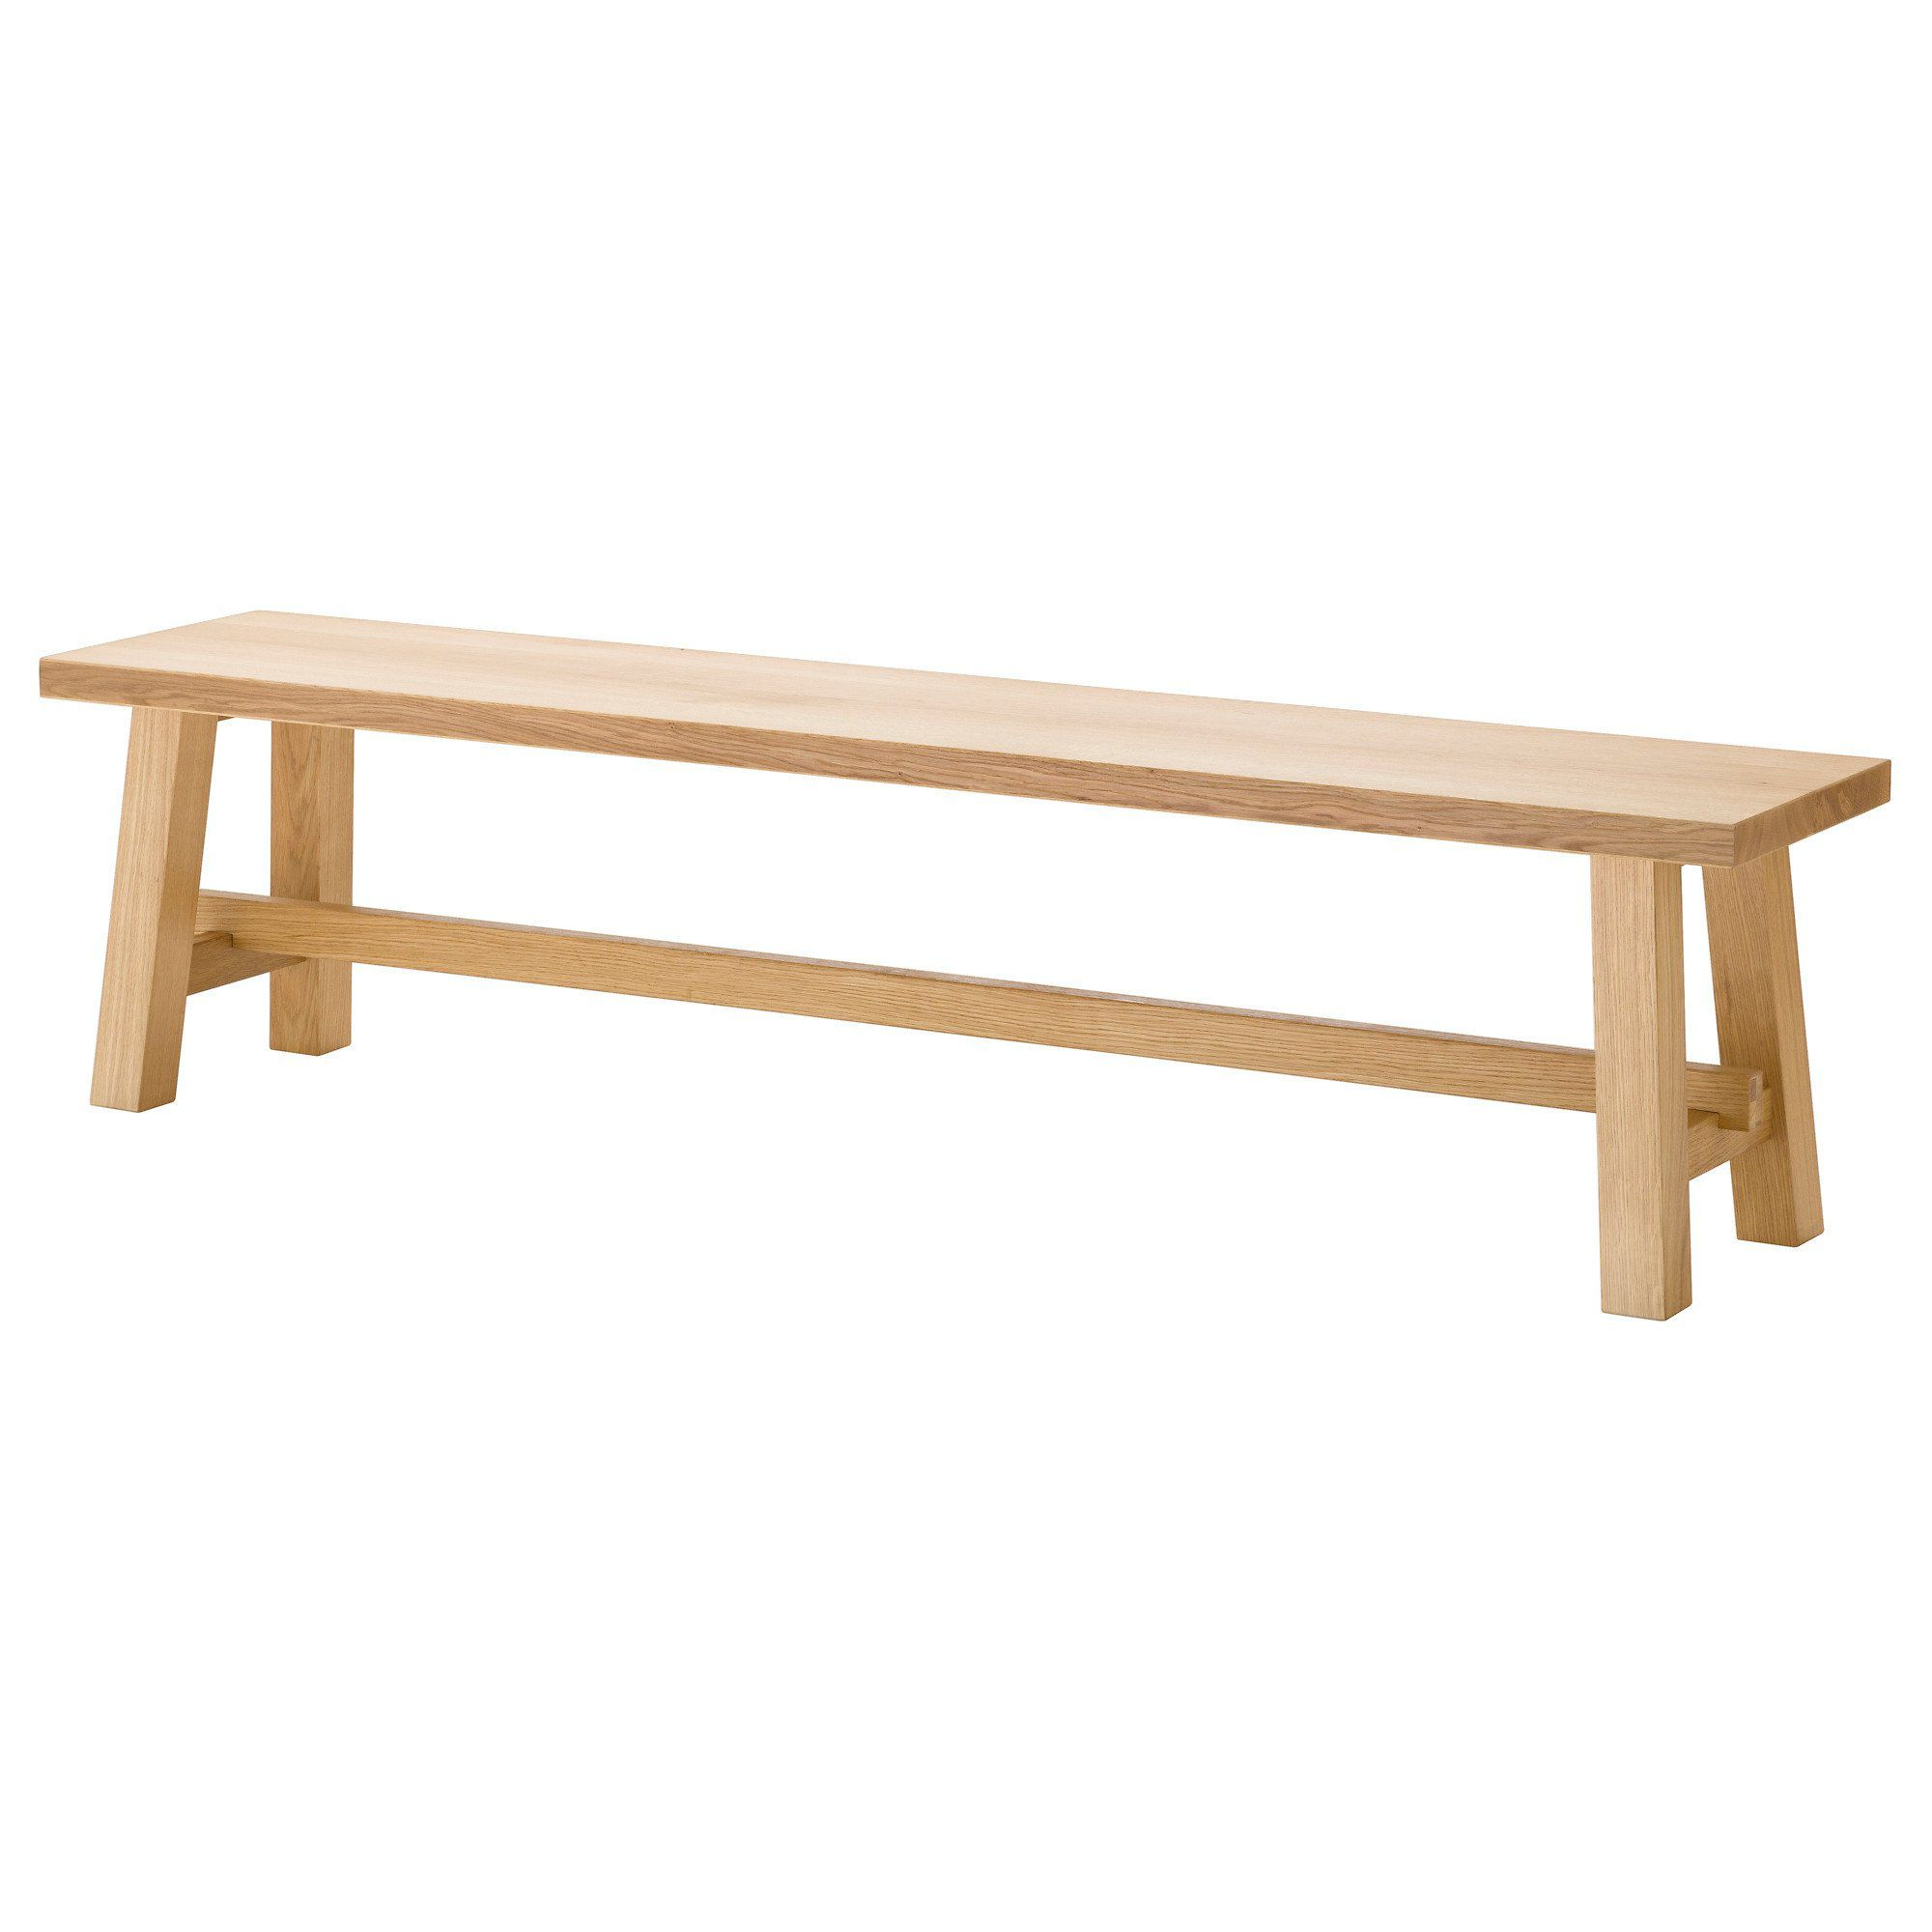 Table—Ikea Shipping